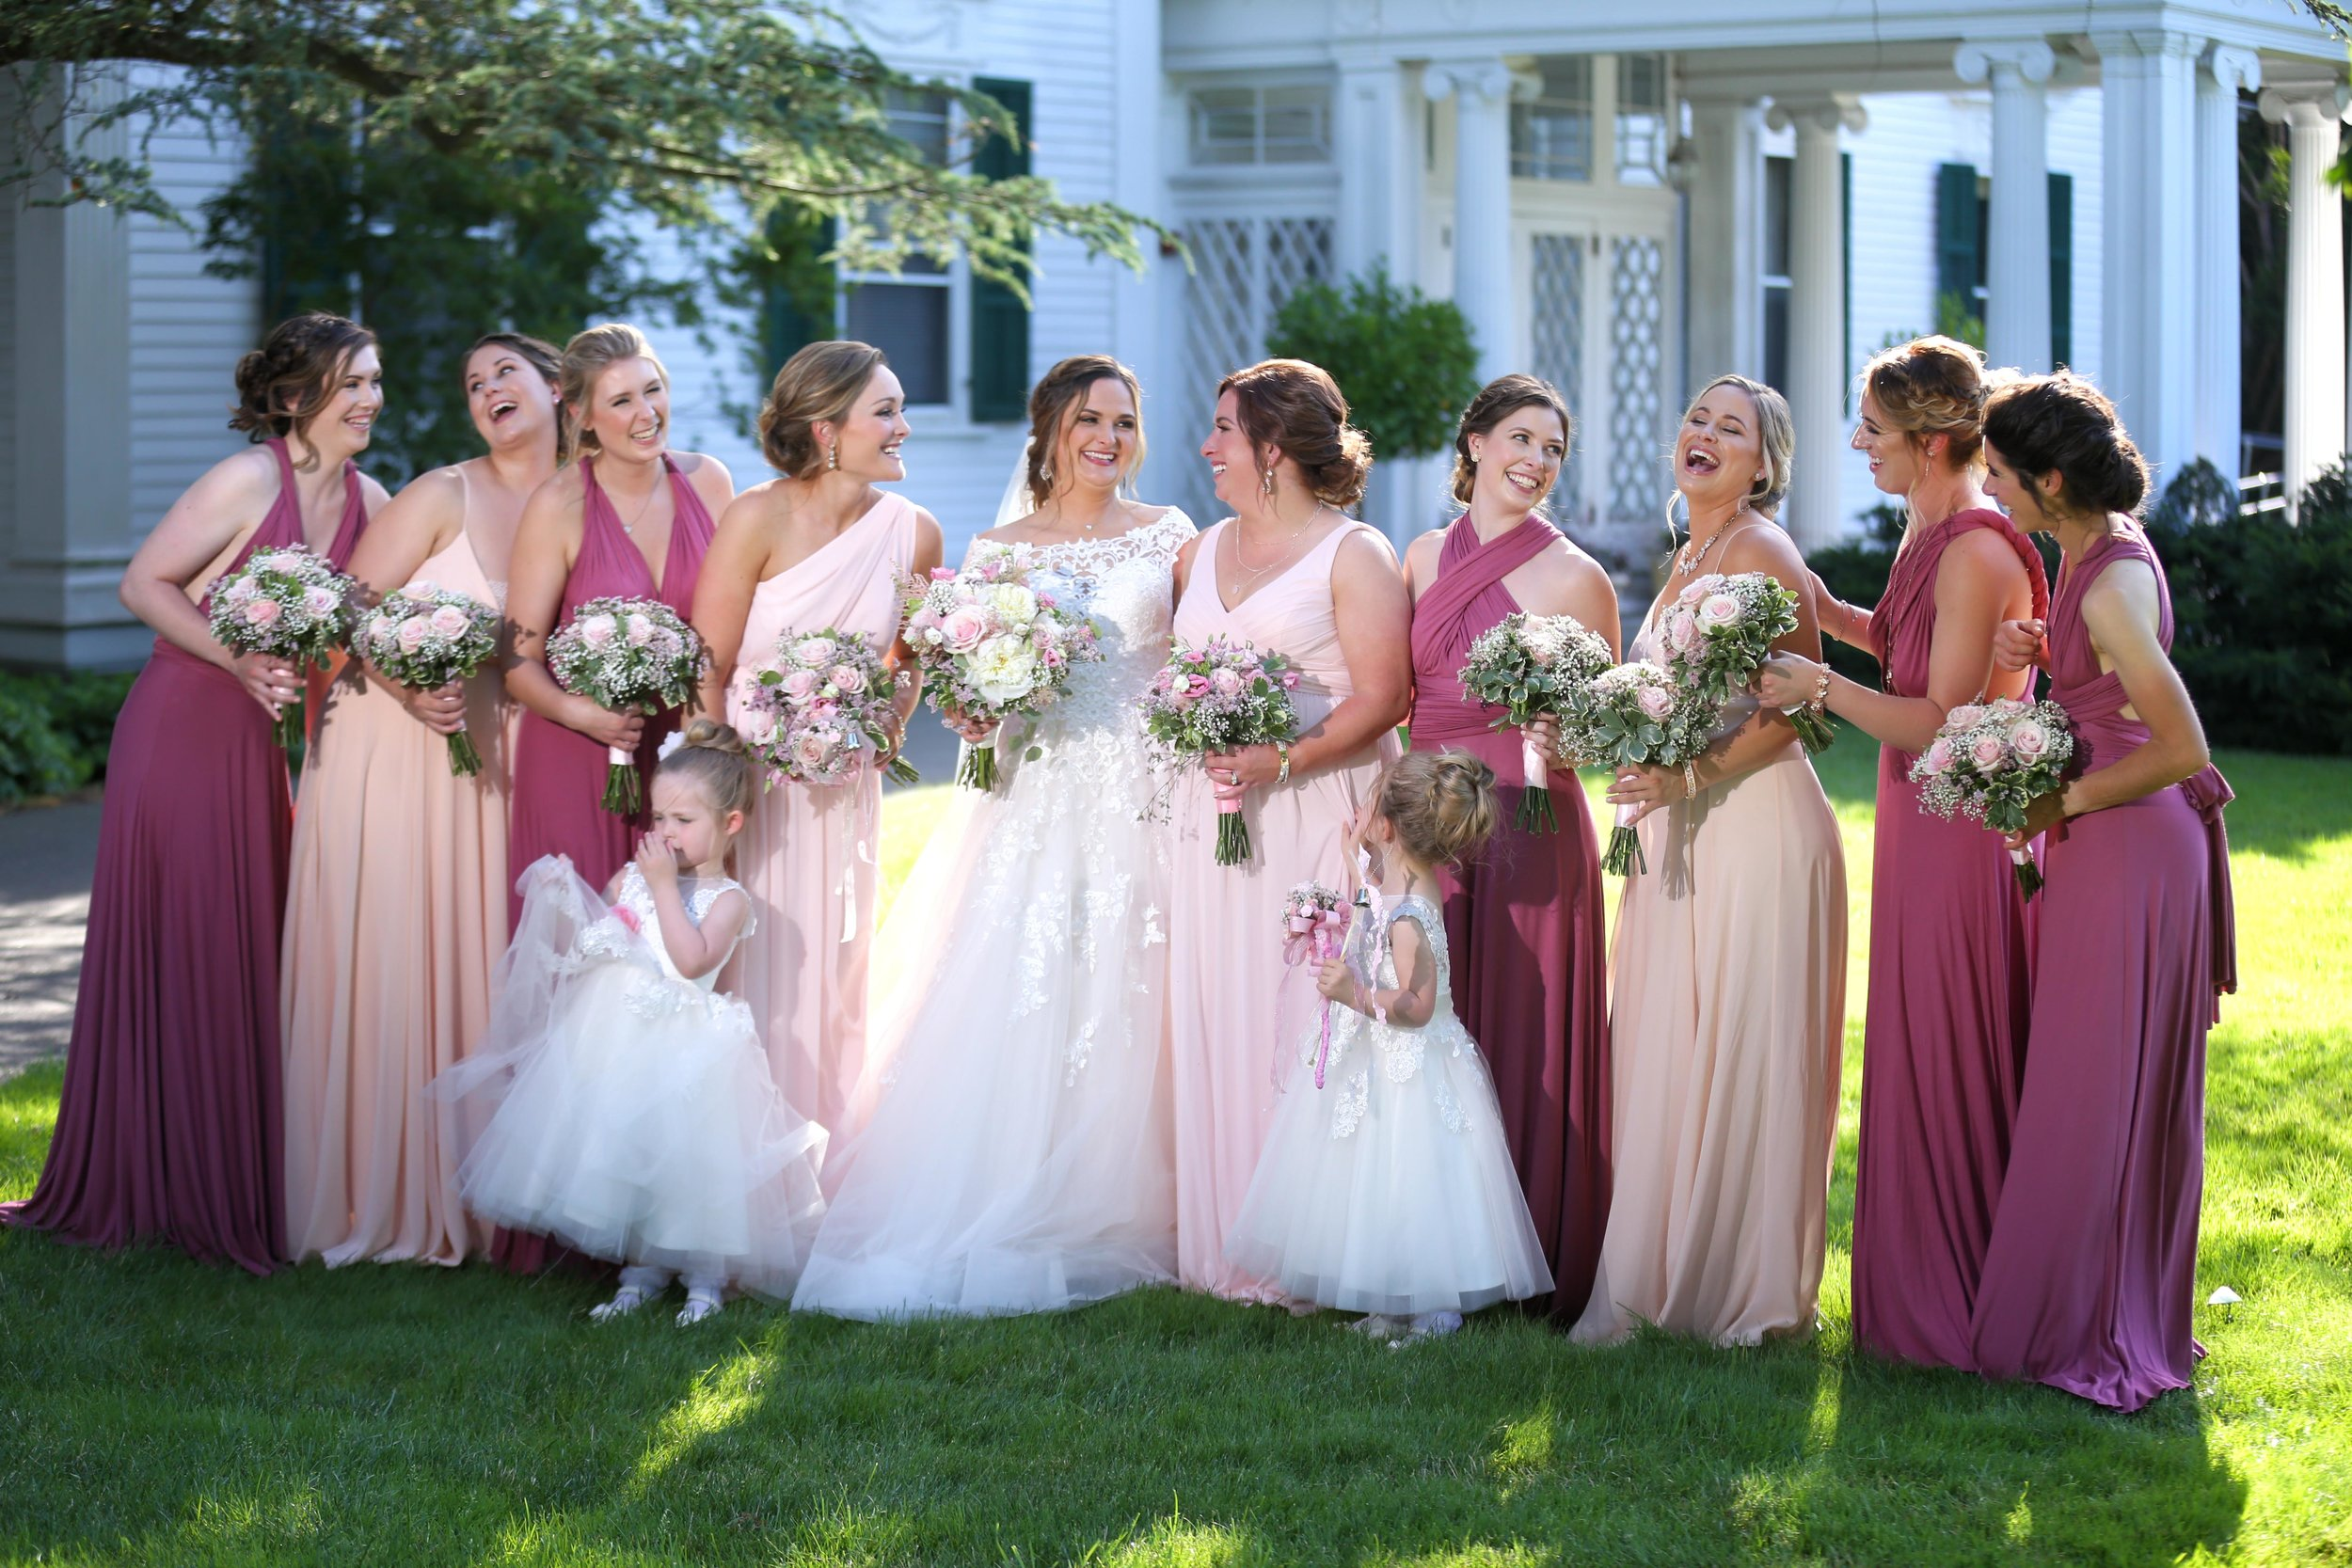 Bride in White empire waist dress & 9 bridesmaids in pink-infinity dresses outside-outdoor-mansion laughing in Morristown-nj